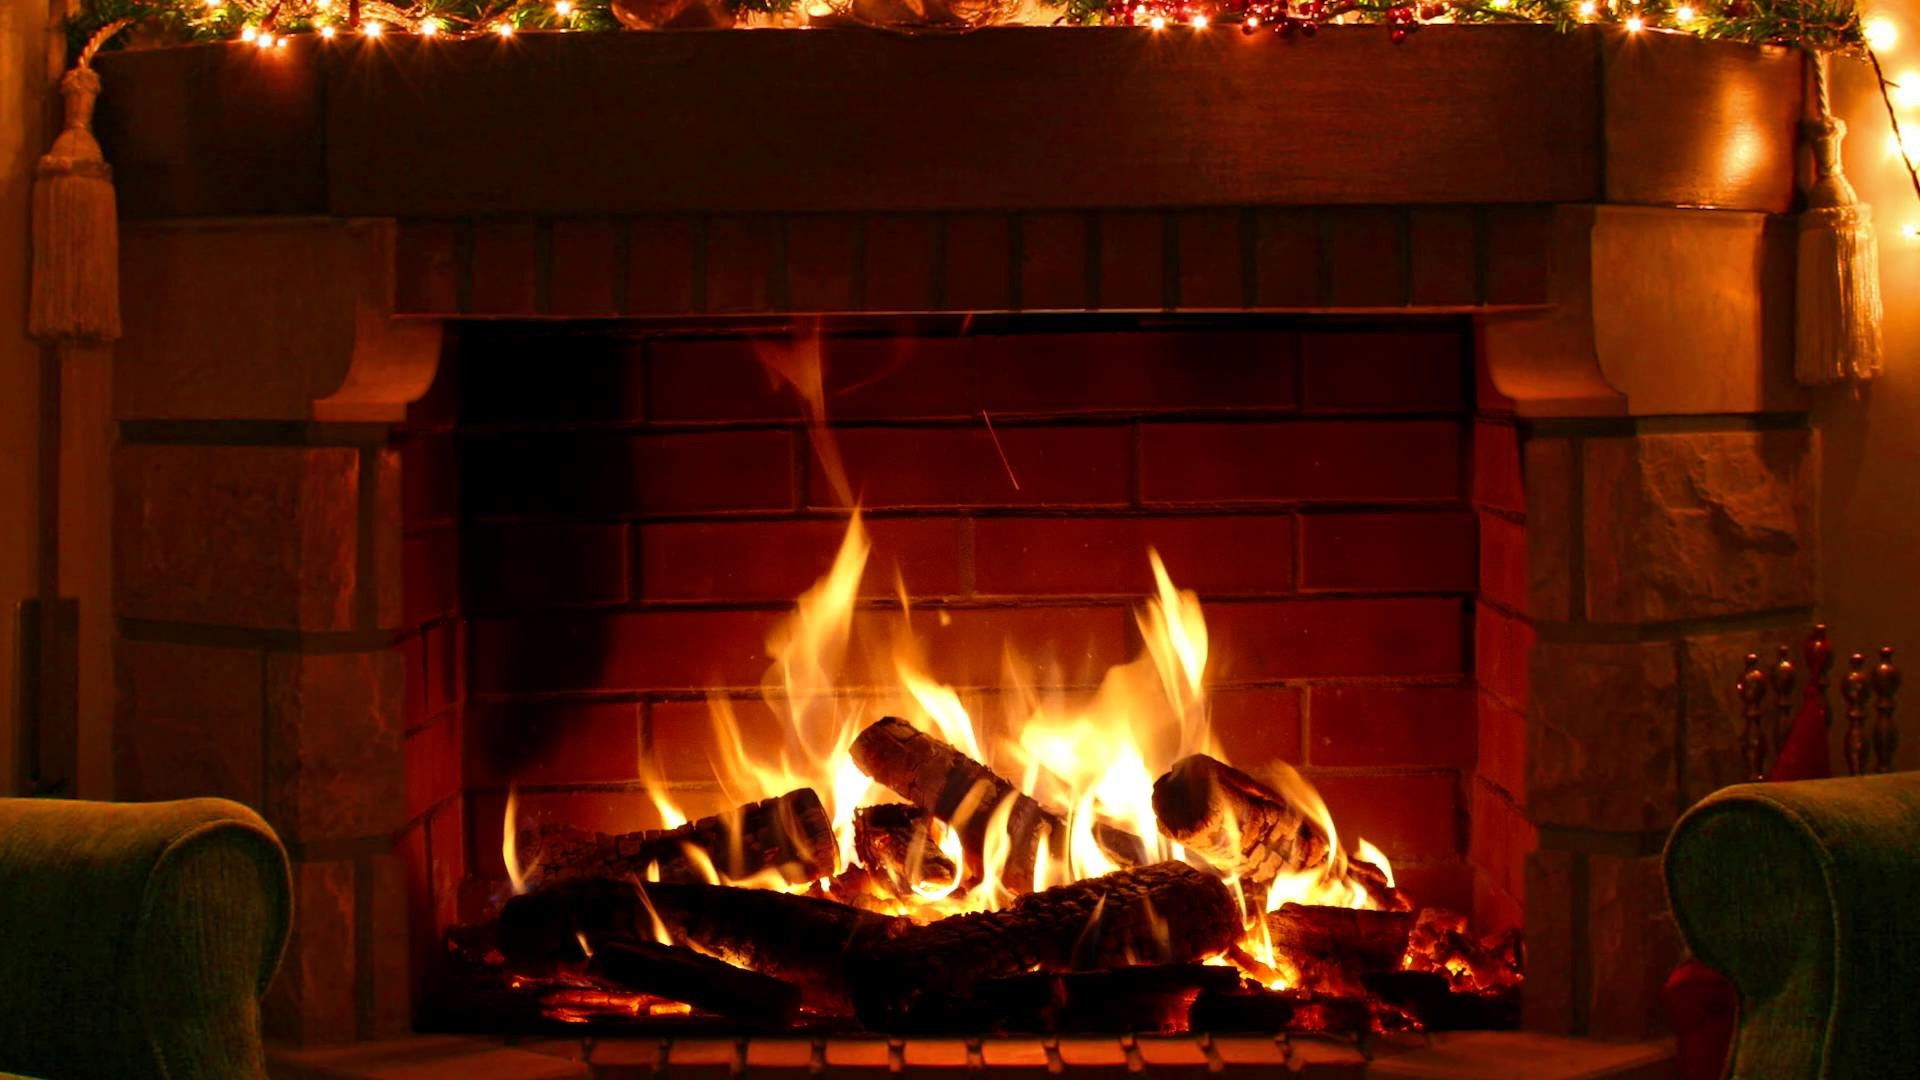 Fireplace Christmas Background  Fireplace Wallpaper 57 images